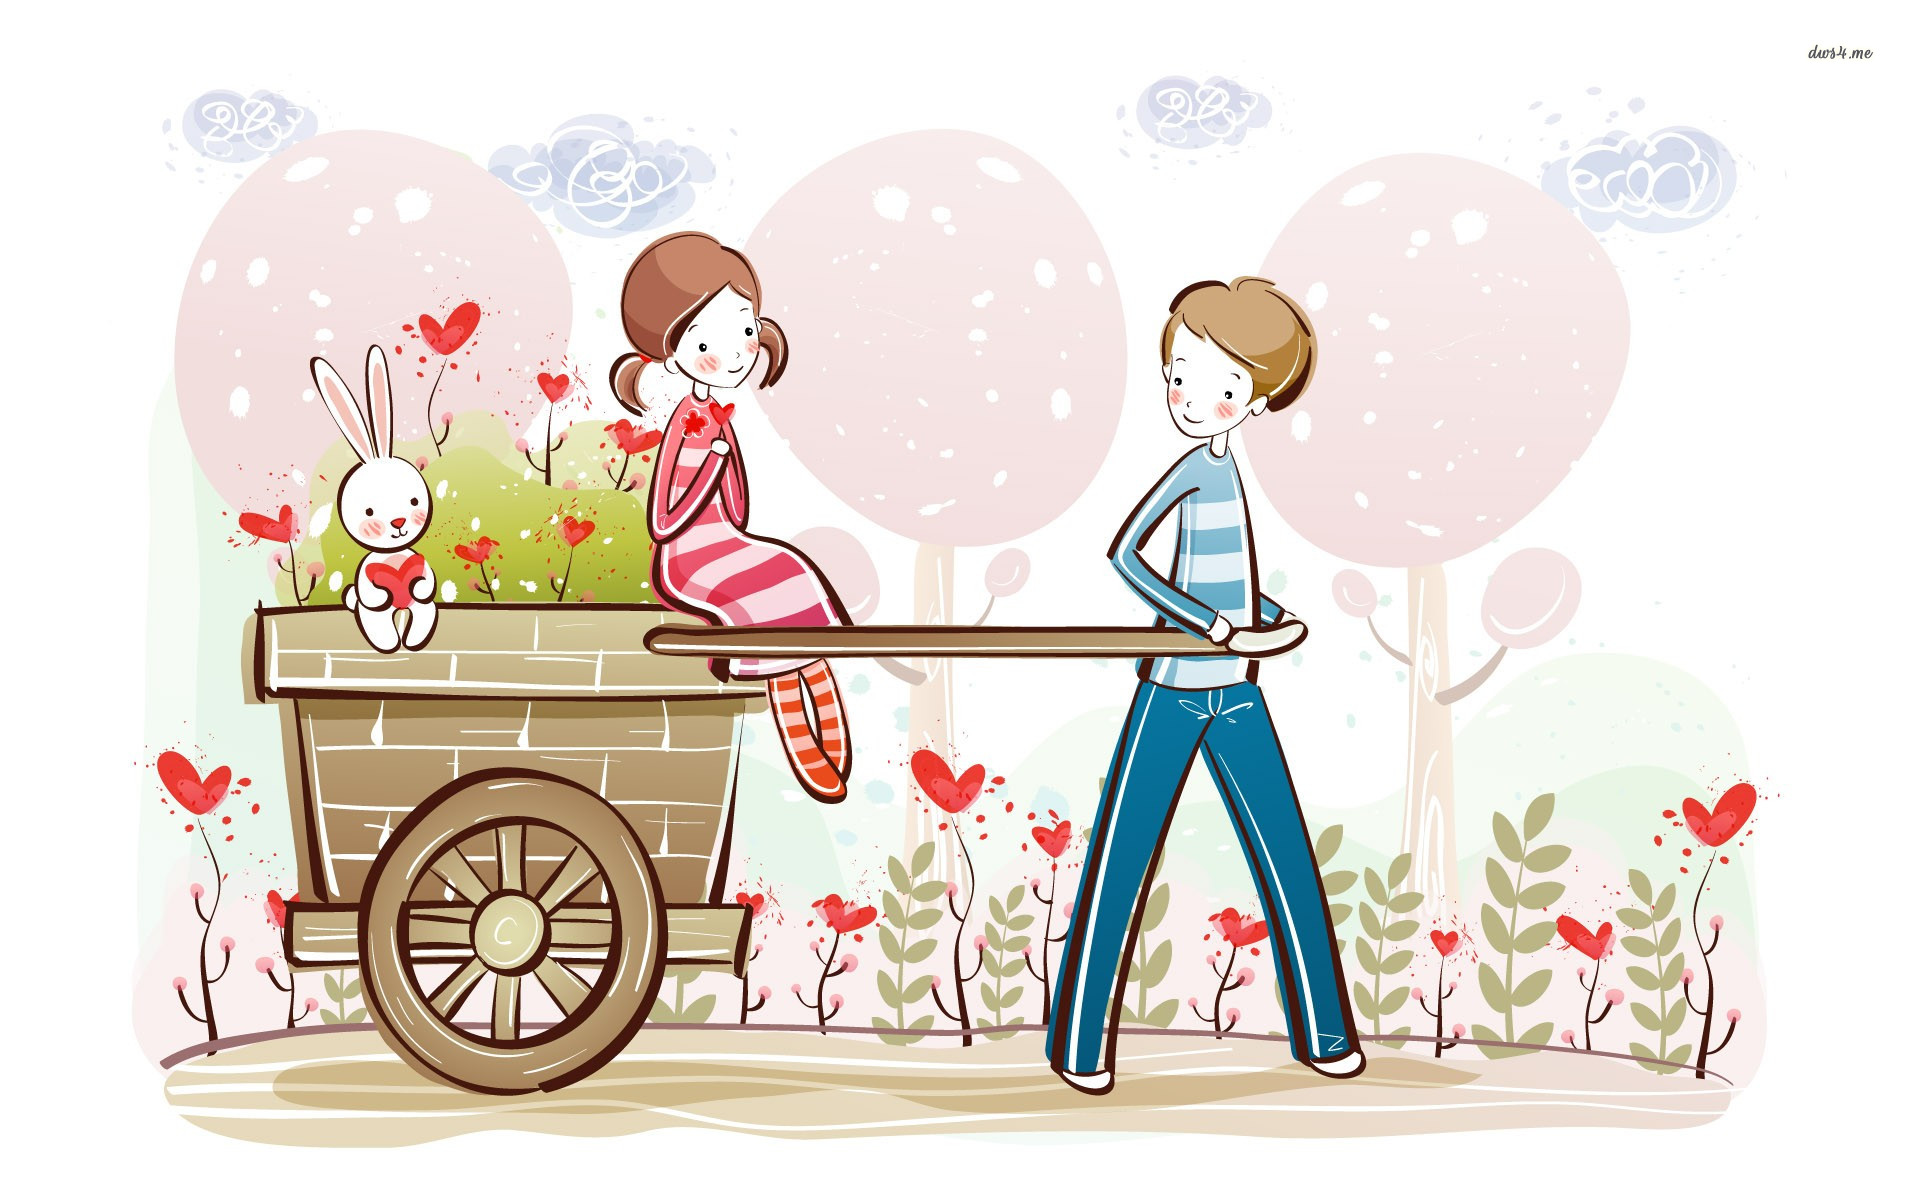 Beautiful Love Couple Cartoon HD Wallpaper Download - Romantic-Couples-Anime-Wallpapers  Graphic_391613.jpg?92dbd0\u002692dbd0